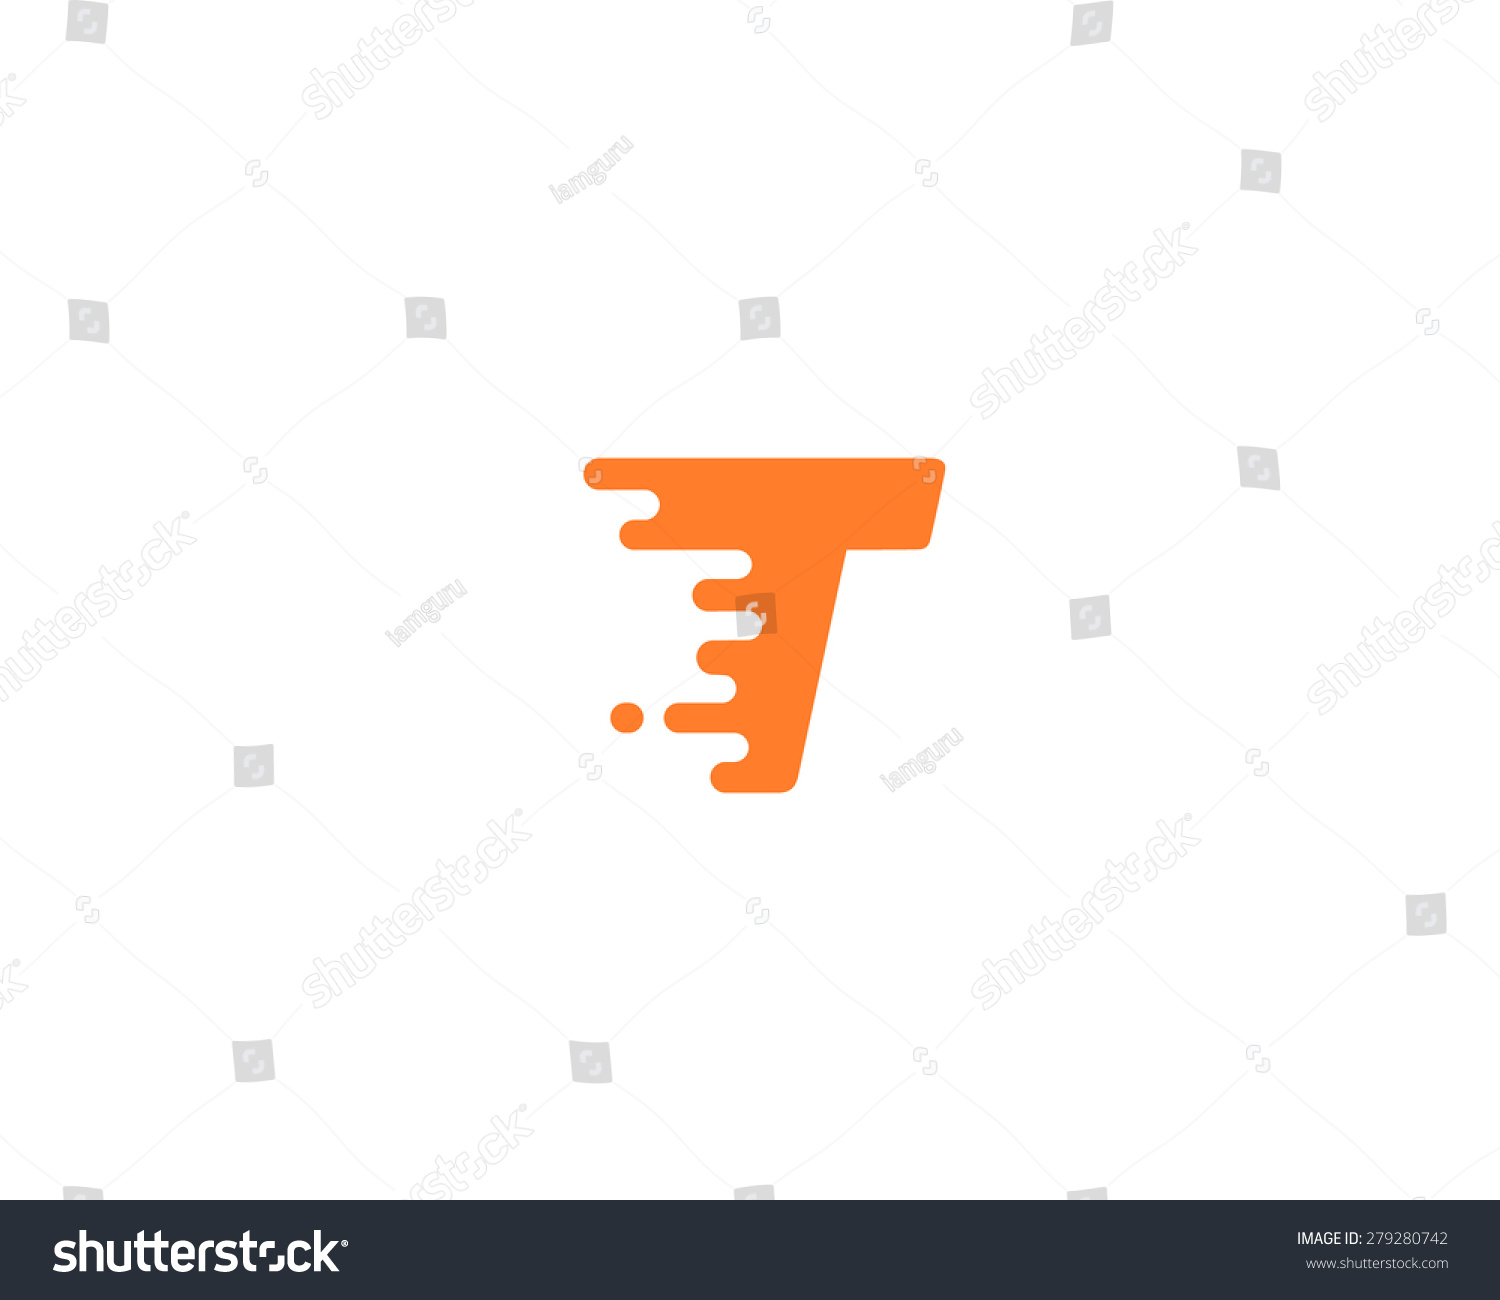 pic  stock photo abstract letter t logo design template dynamic unusual font universal fast speed fire moving